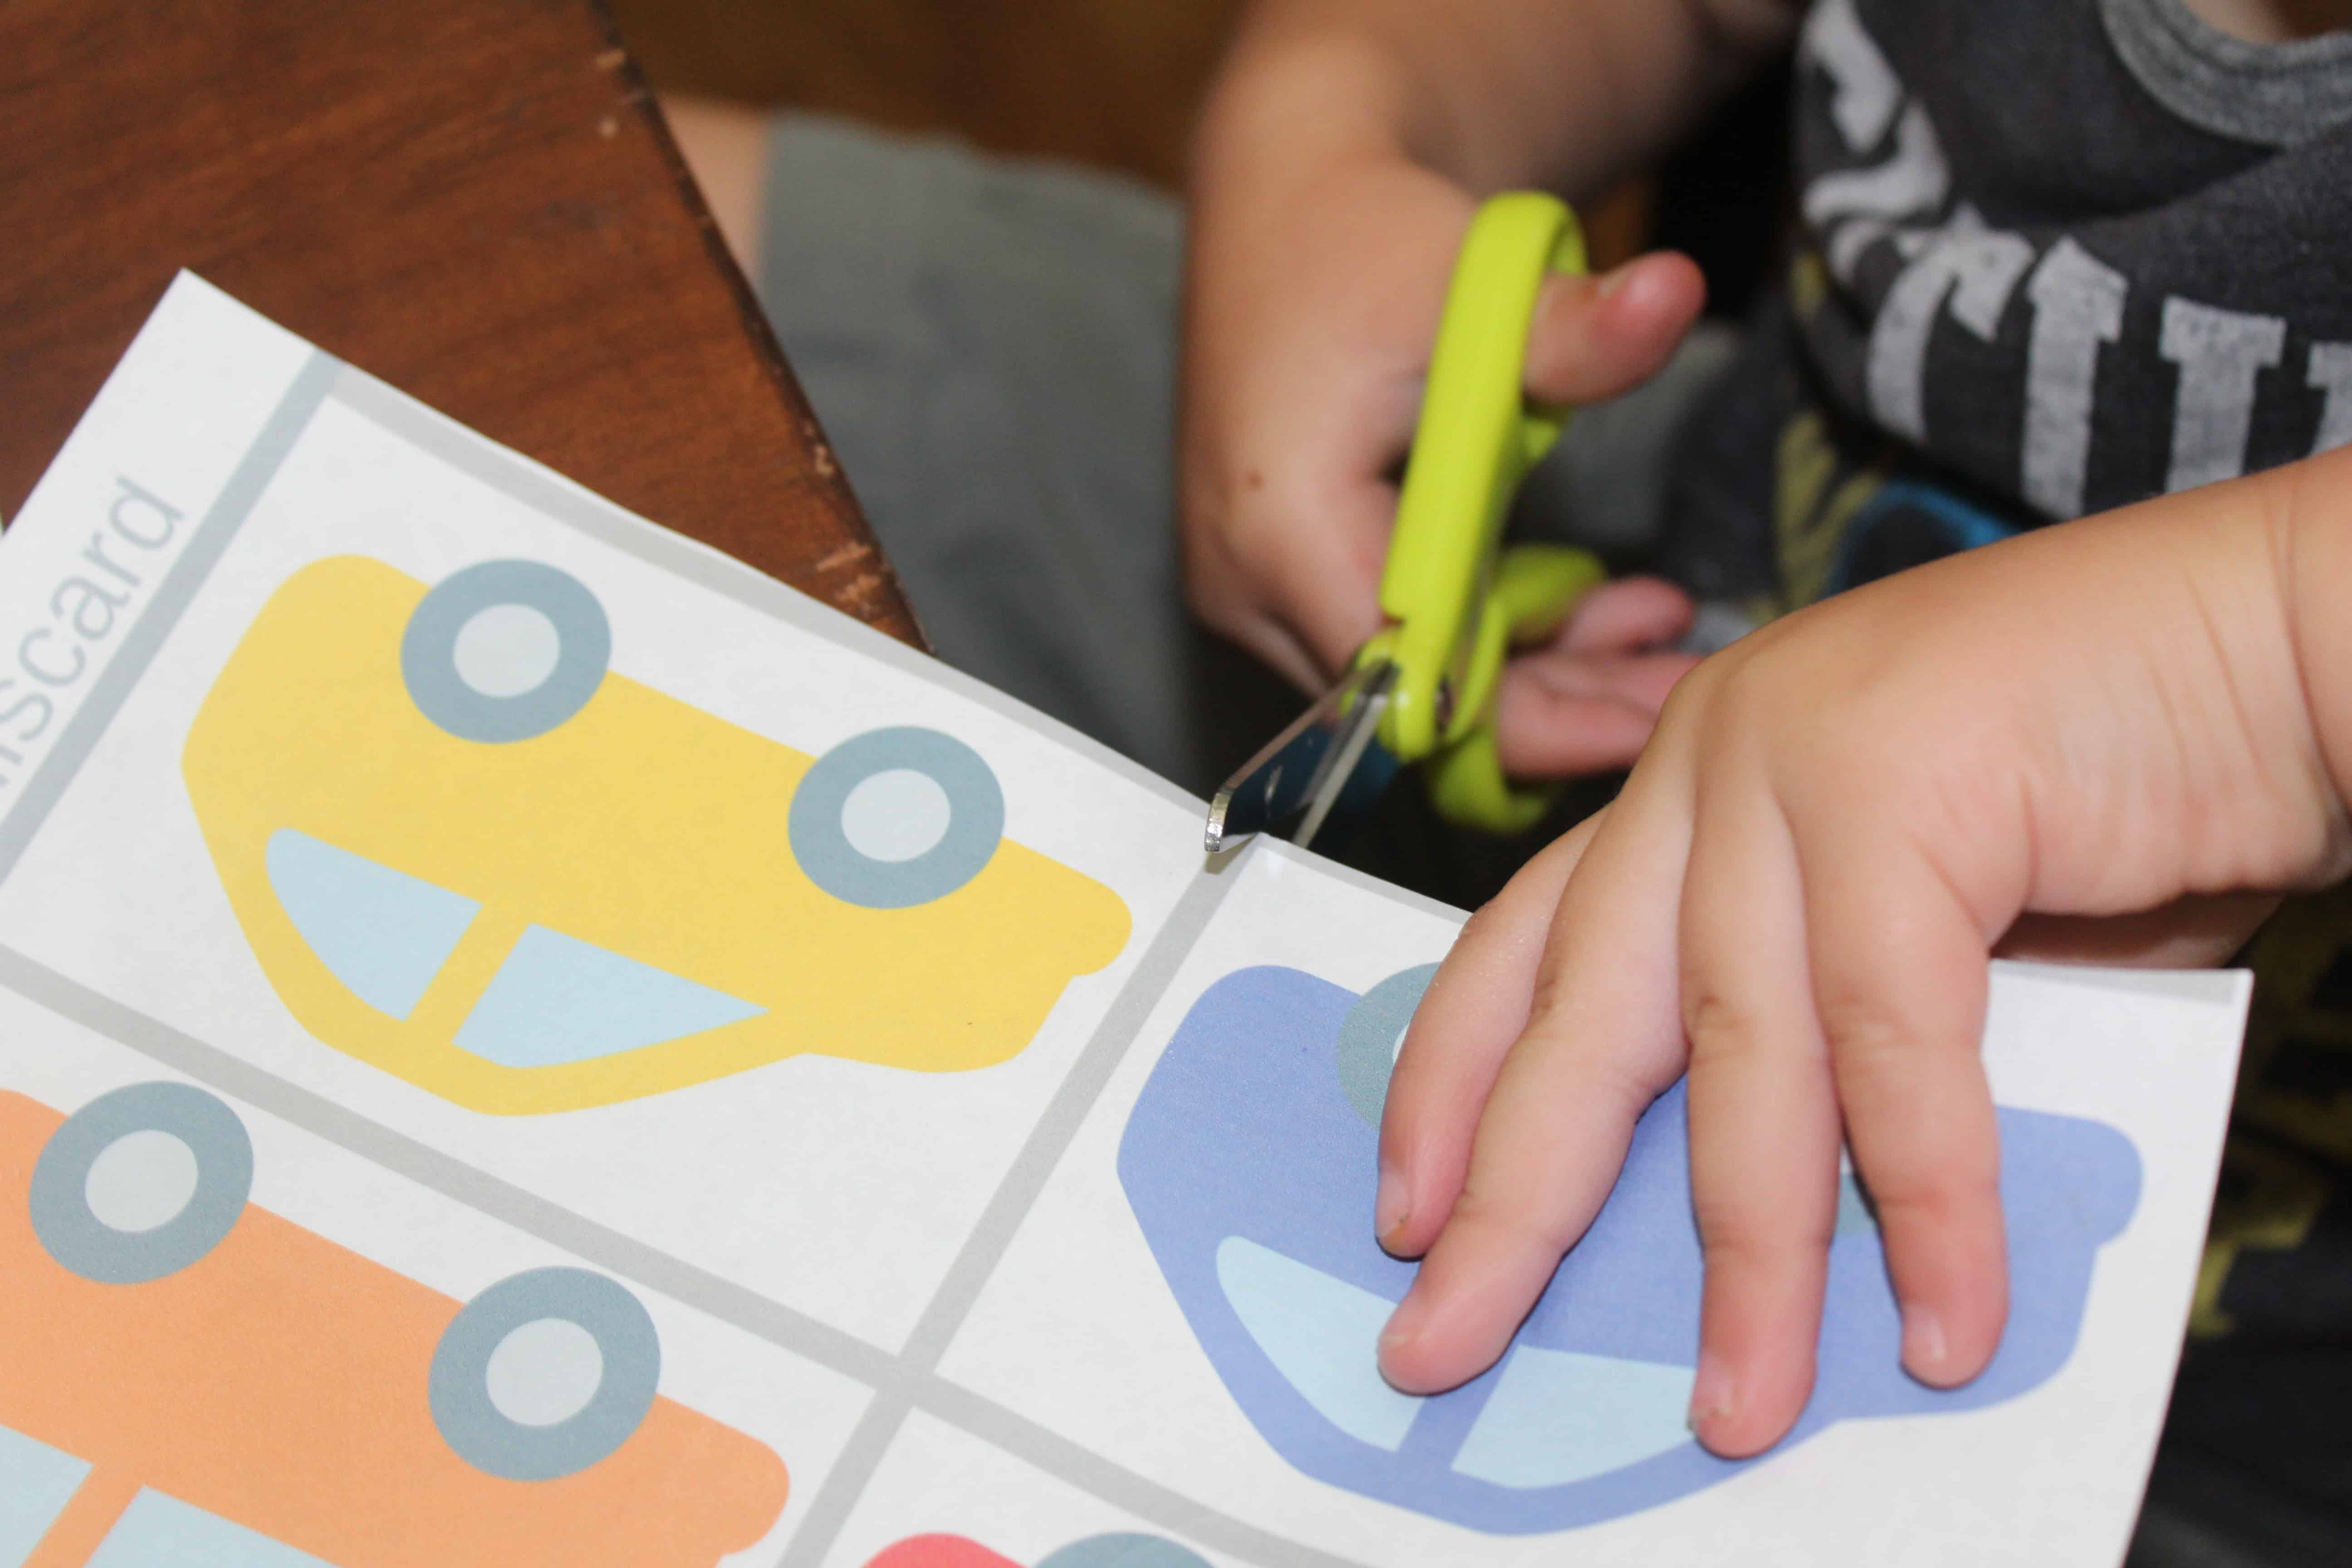 Toddler with safety scissors cutting out car printouts from the activity pack.